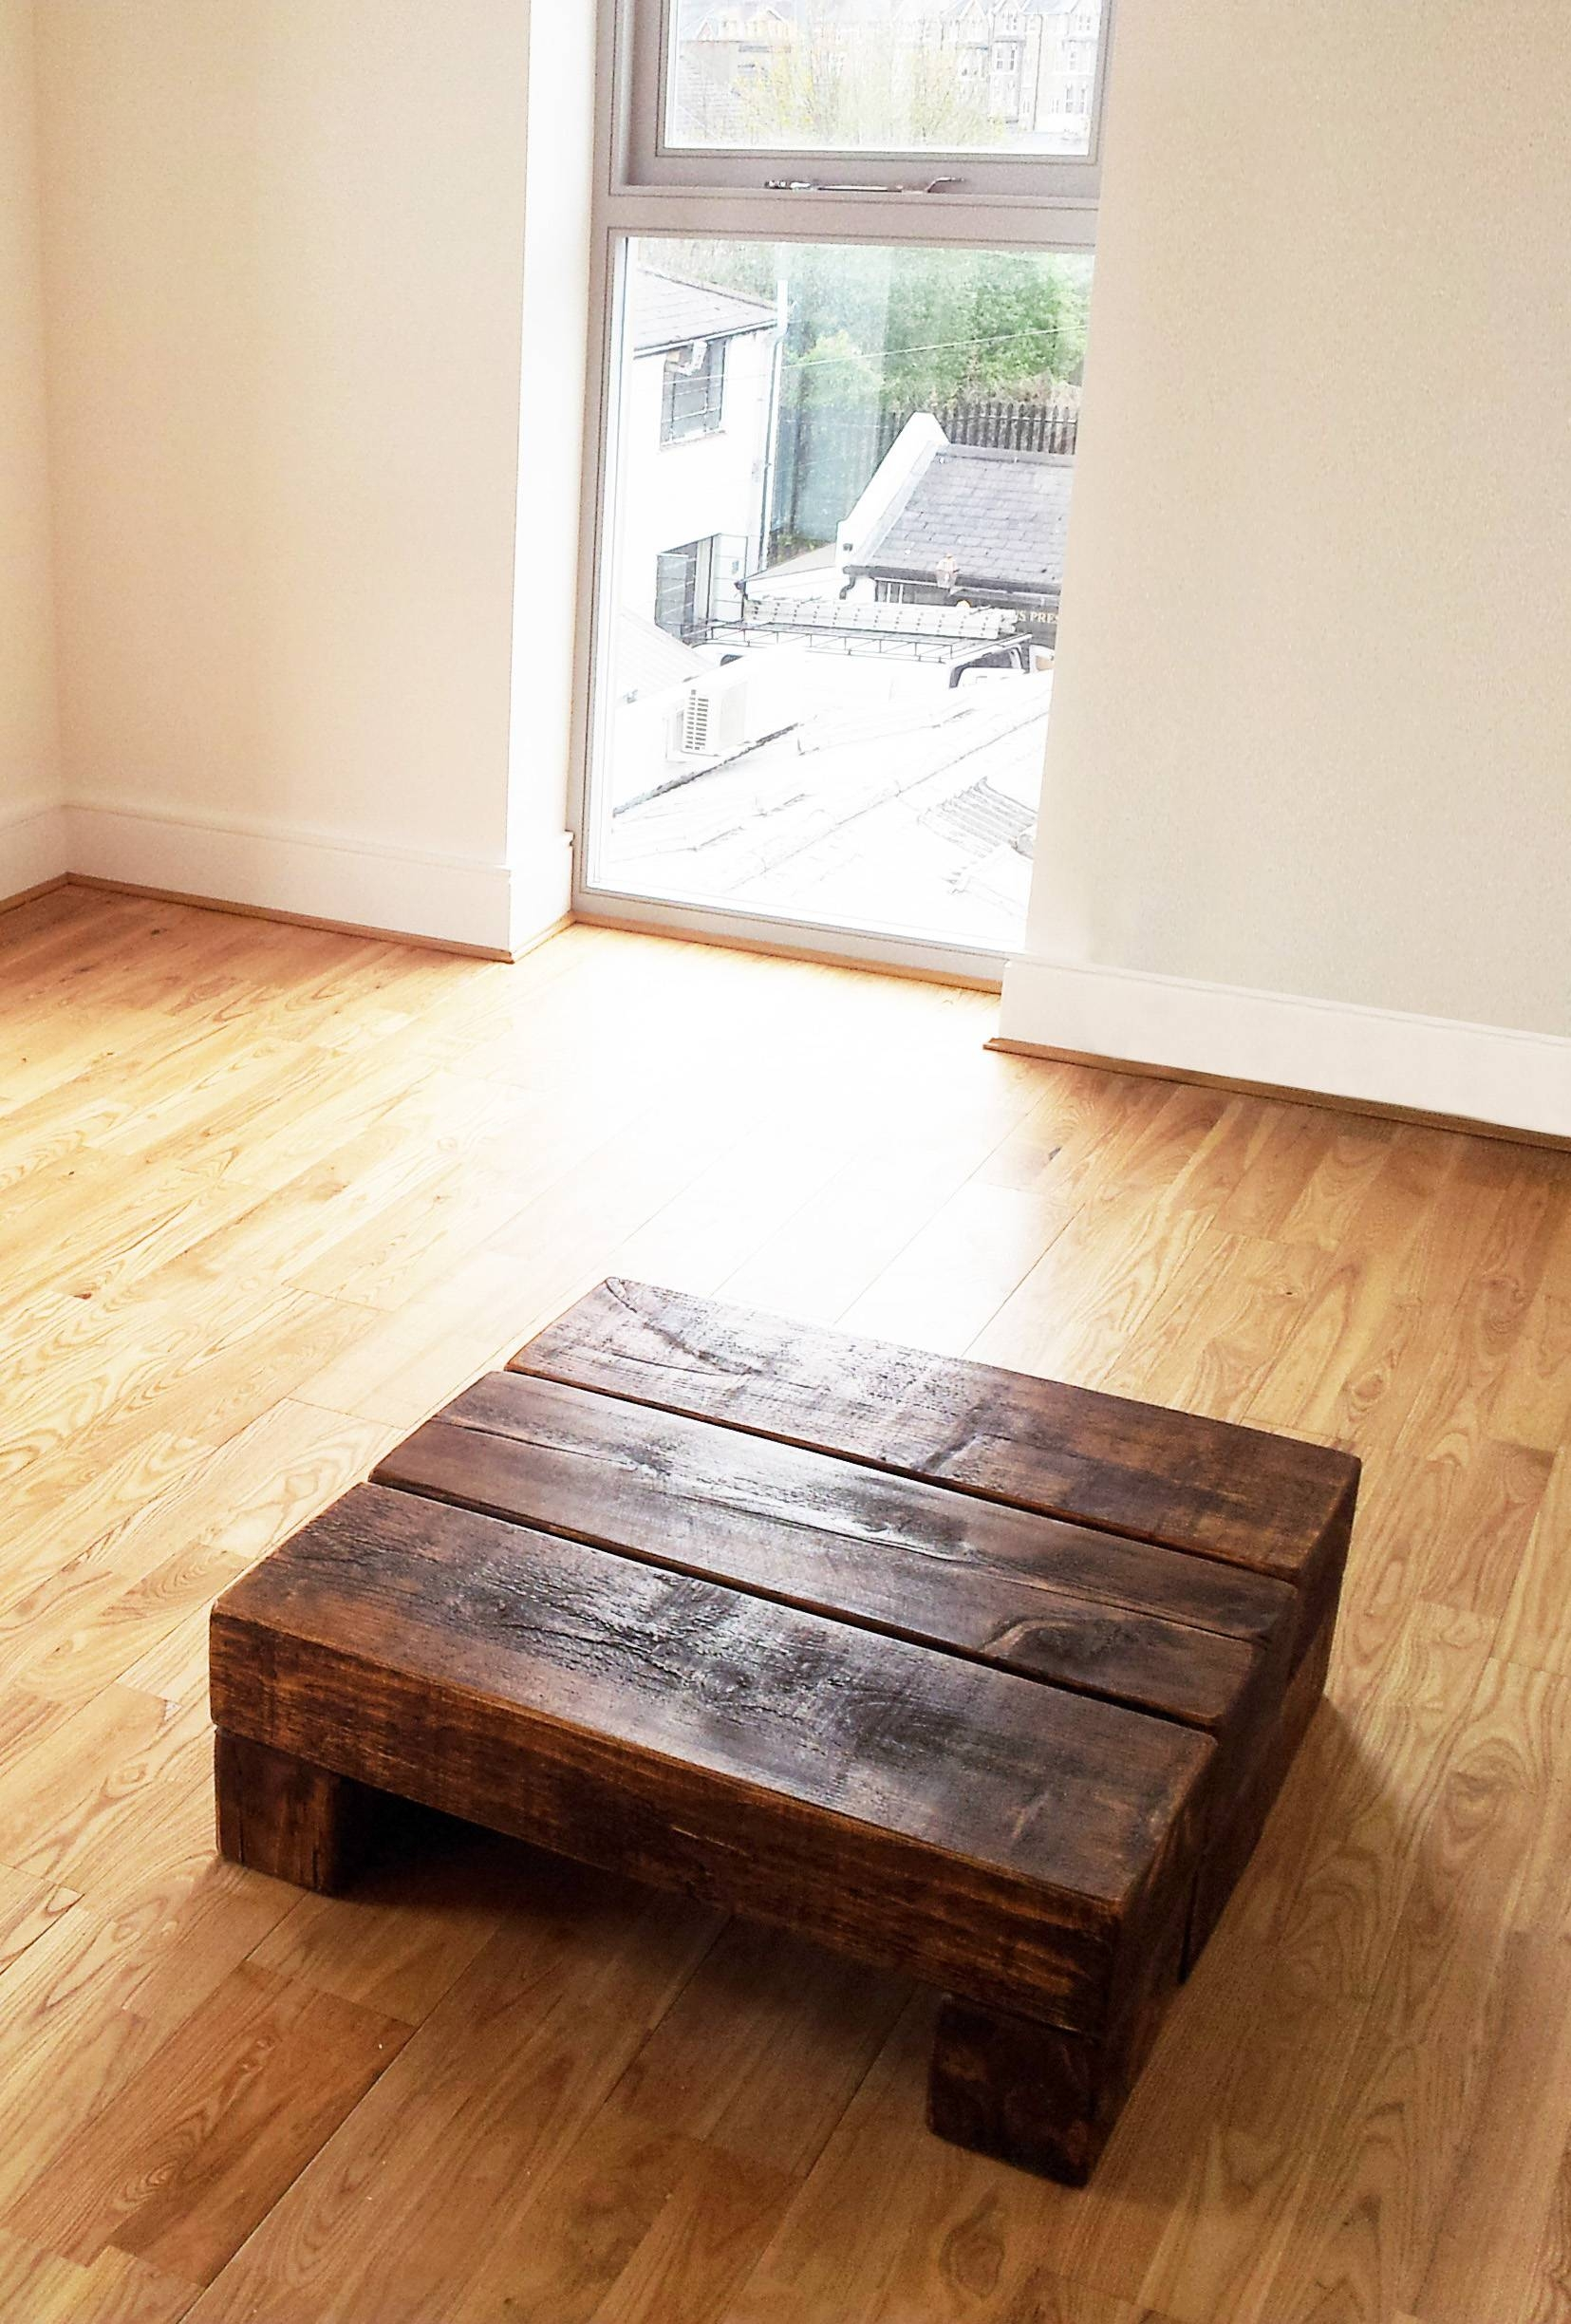 Step Coffee Table - The Cool Wood Company inside Chunky Wood Coffee Tables (Image 21 of 30)